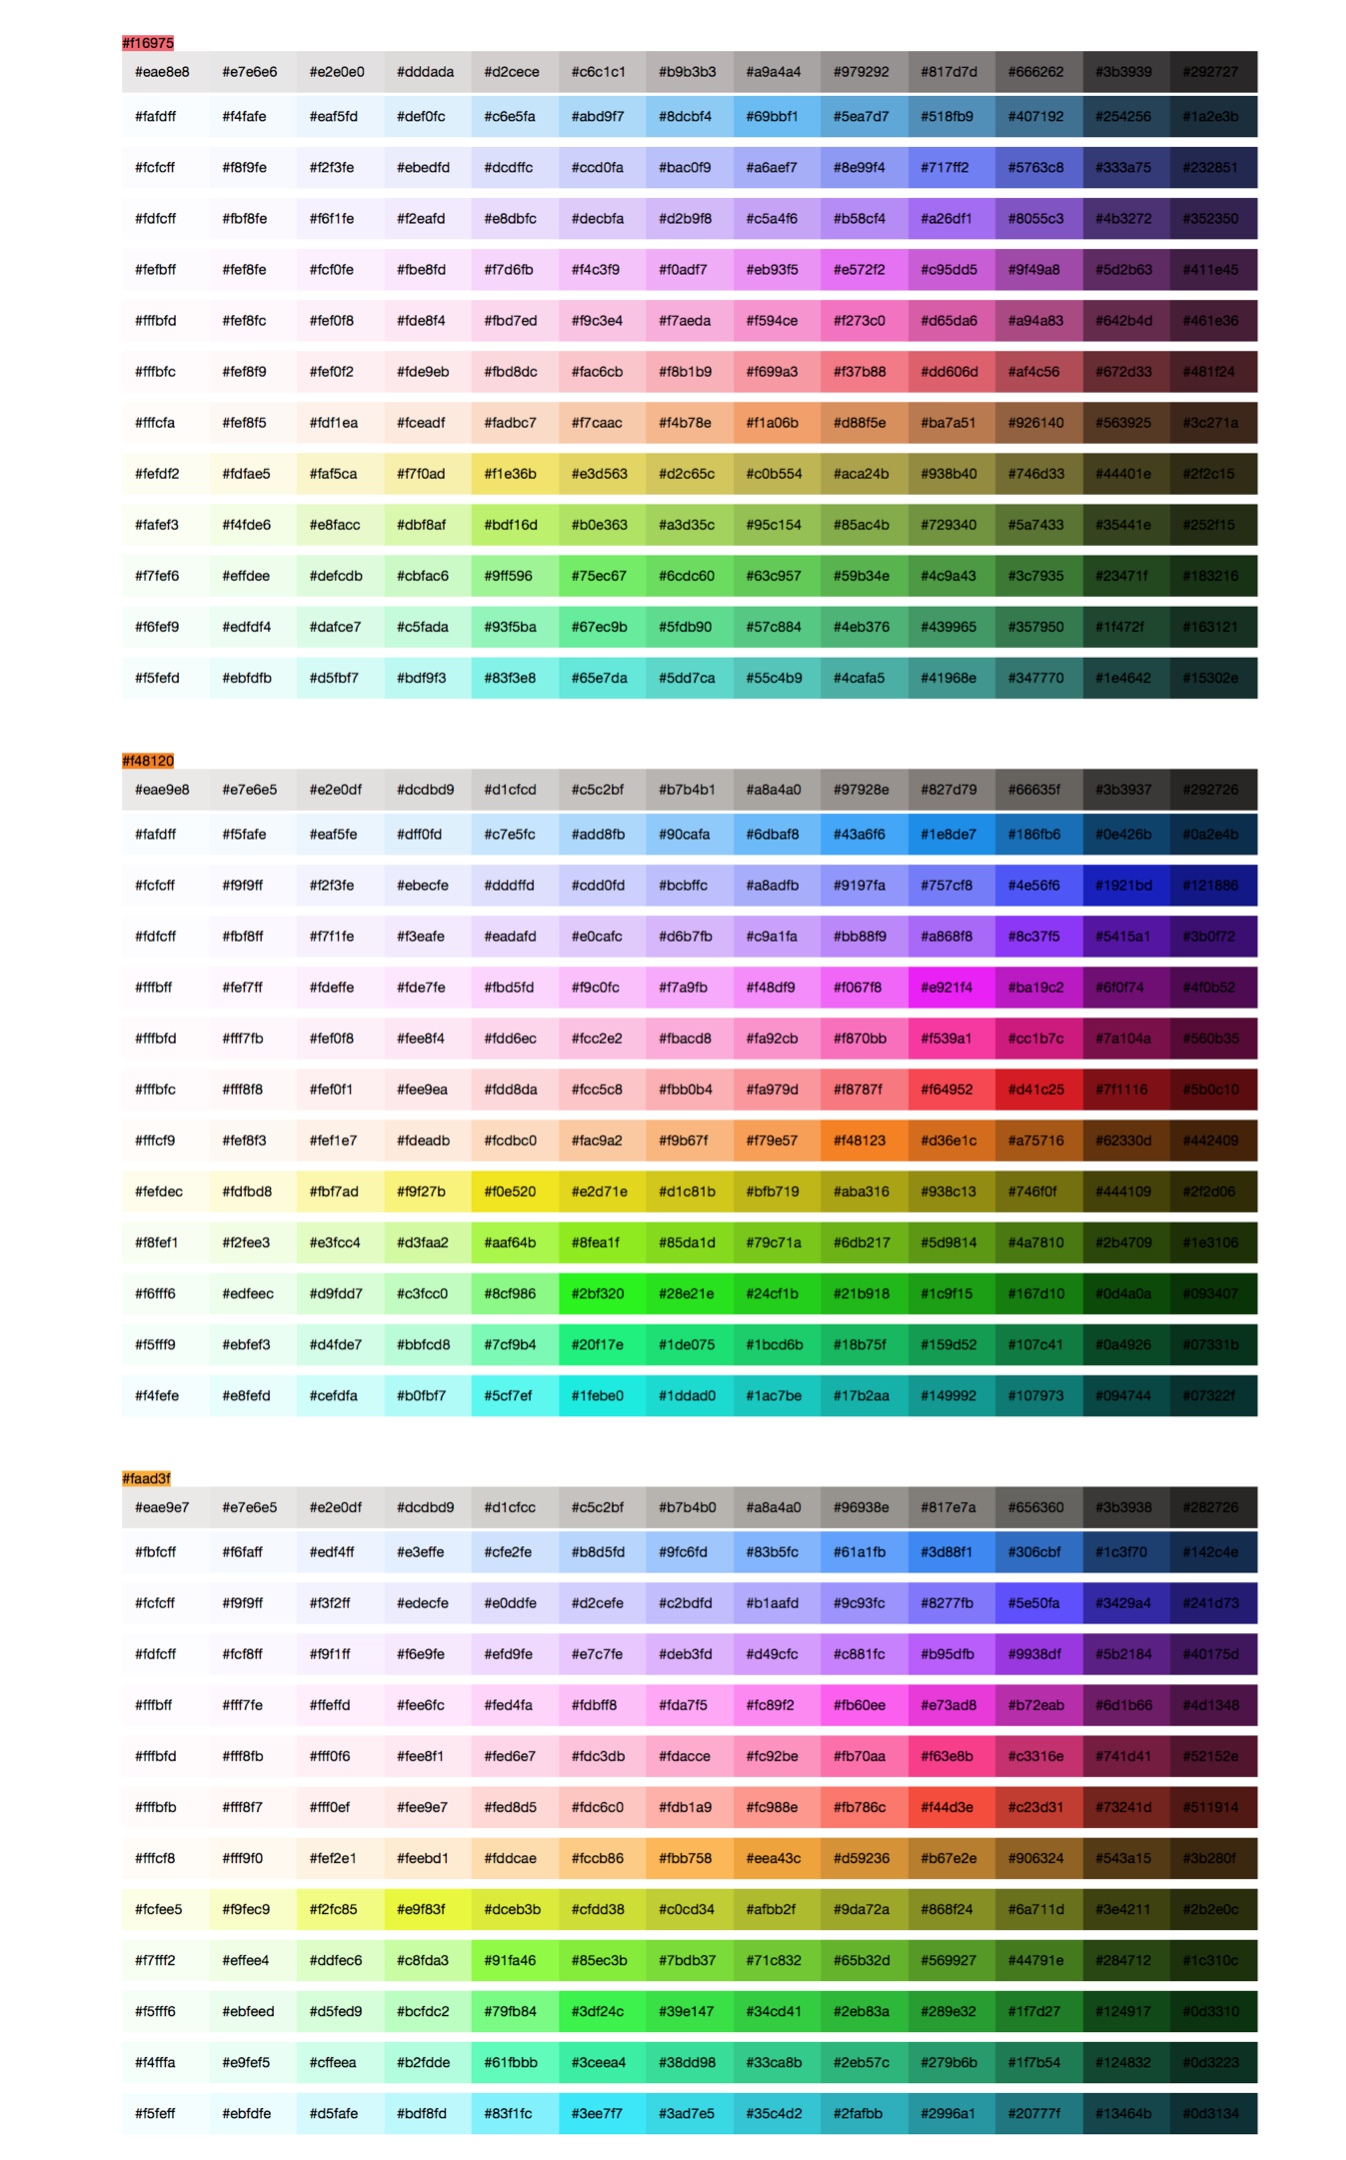 Visualizing the peaks of color intensity